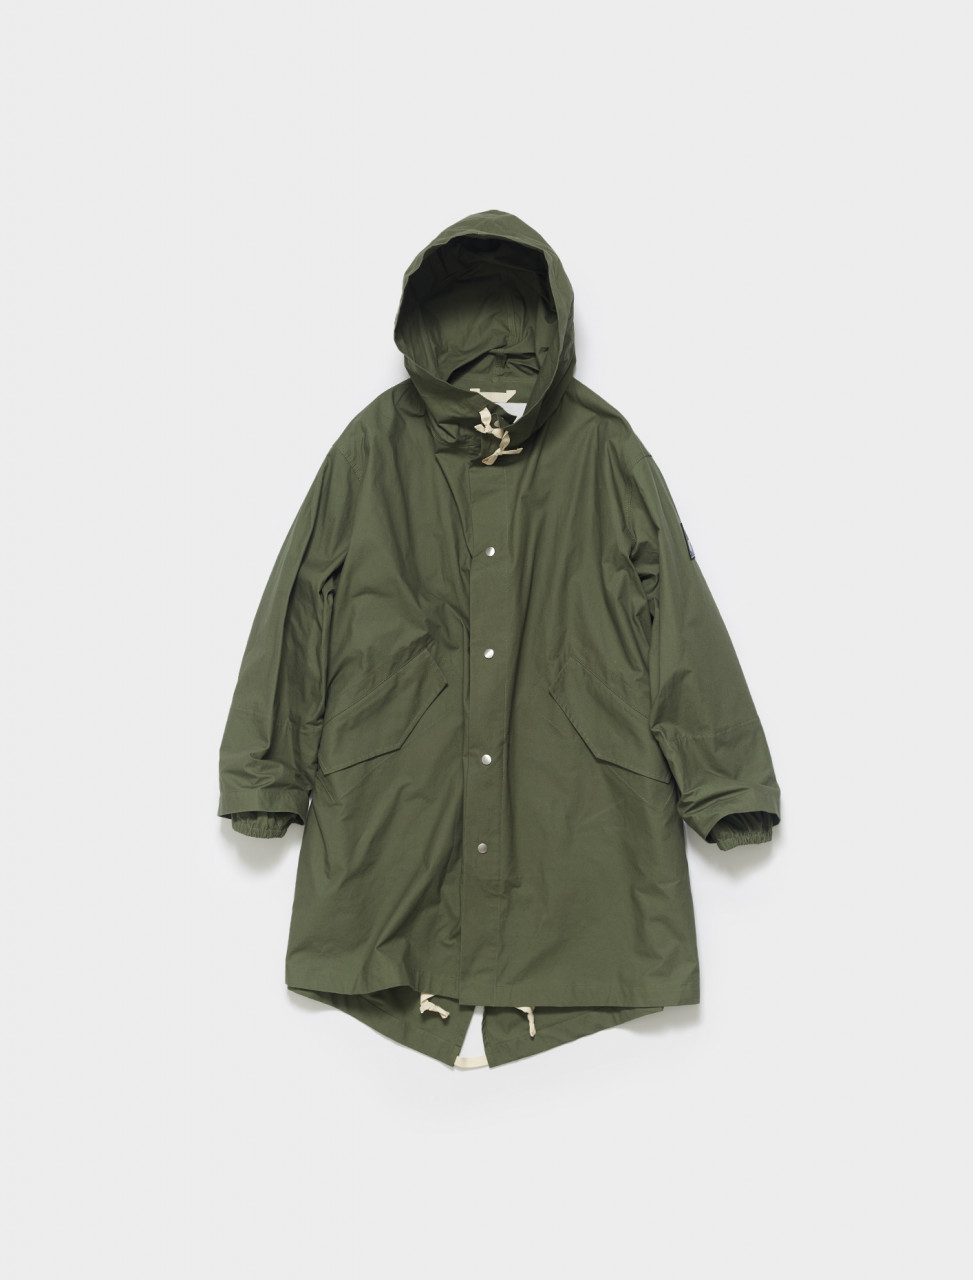 JPUS430005-MS242600-308 JIL SANDER COTTON PARKA IN DARK GREEN